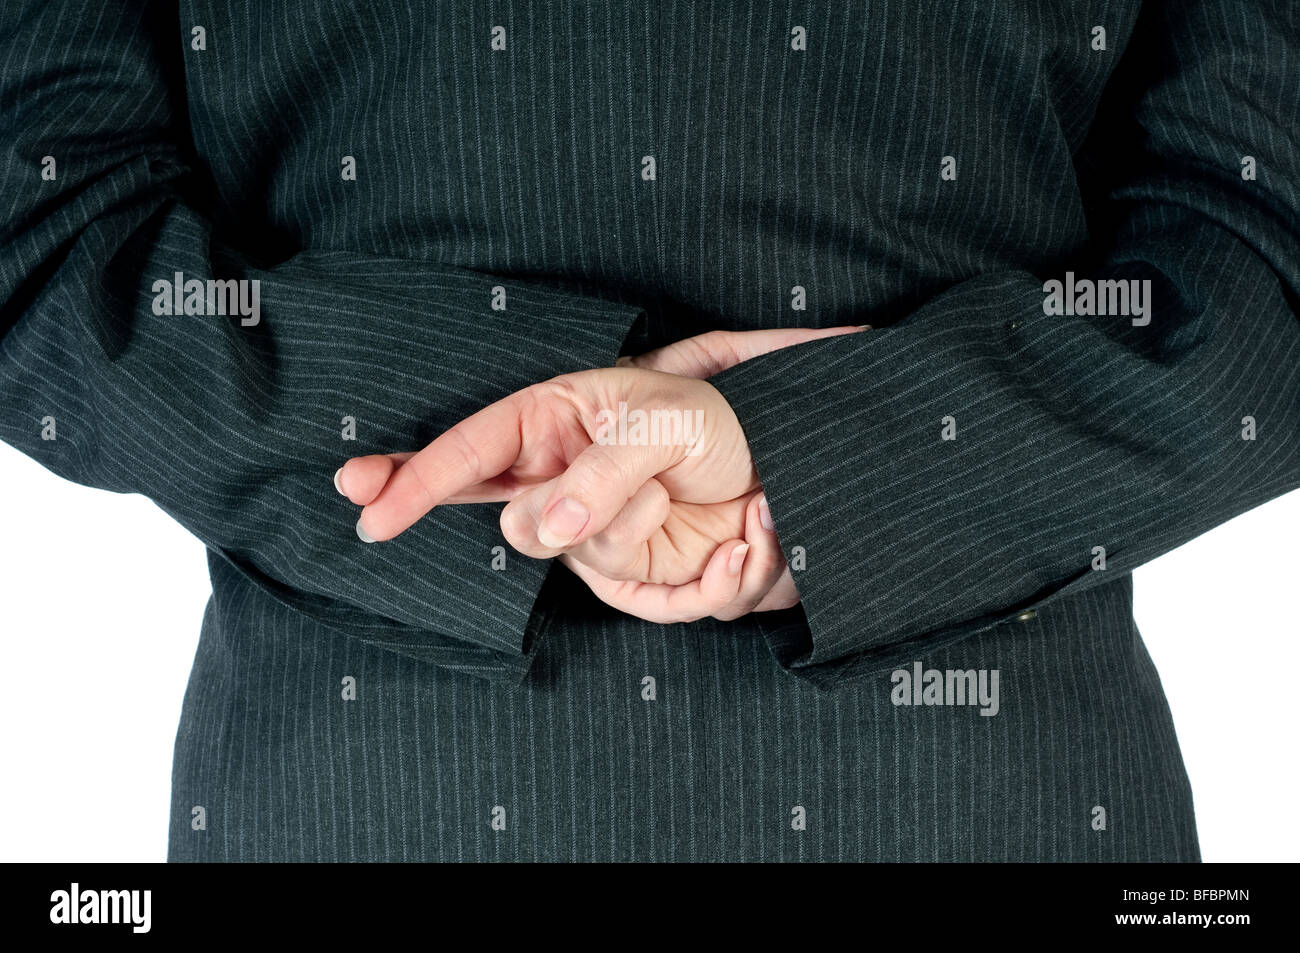 Female business person with fingers crossed behind back - Stock Image